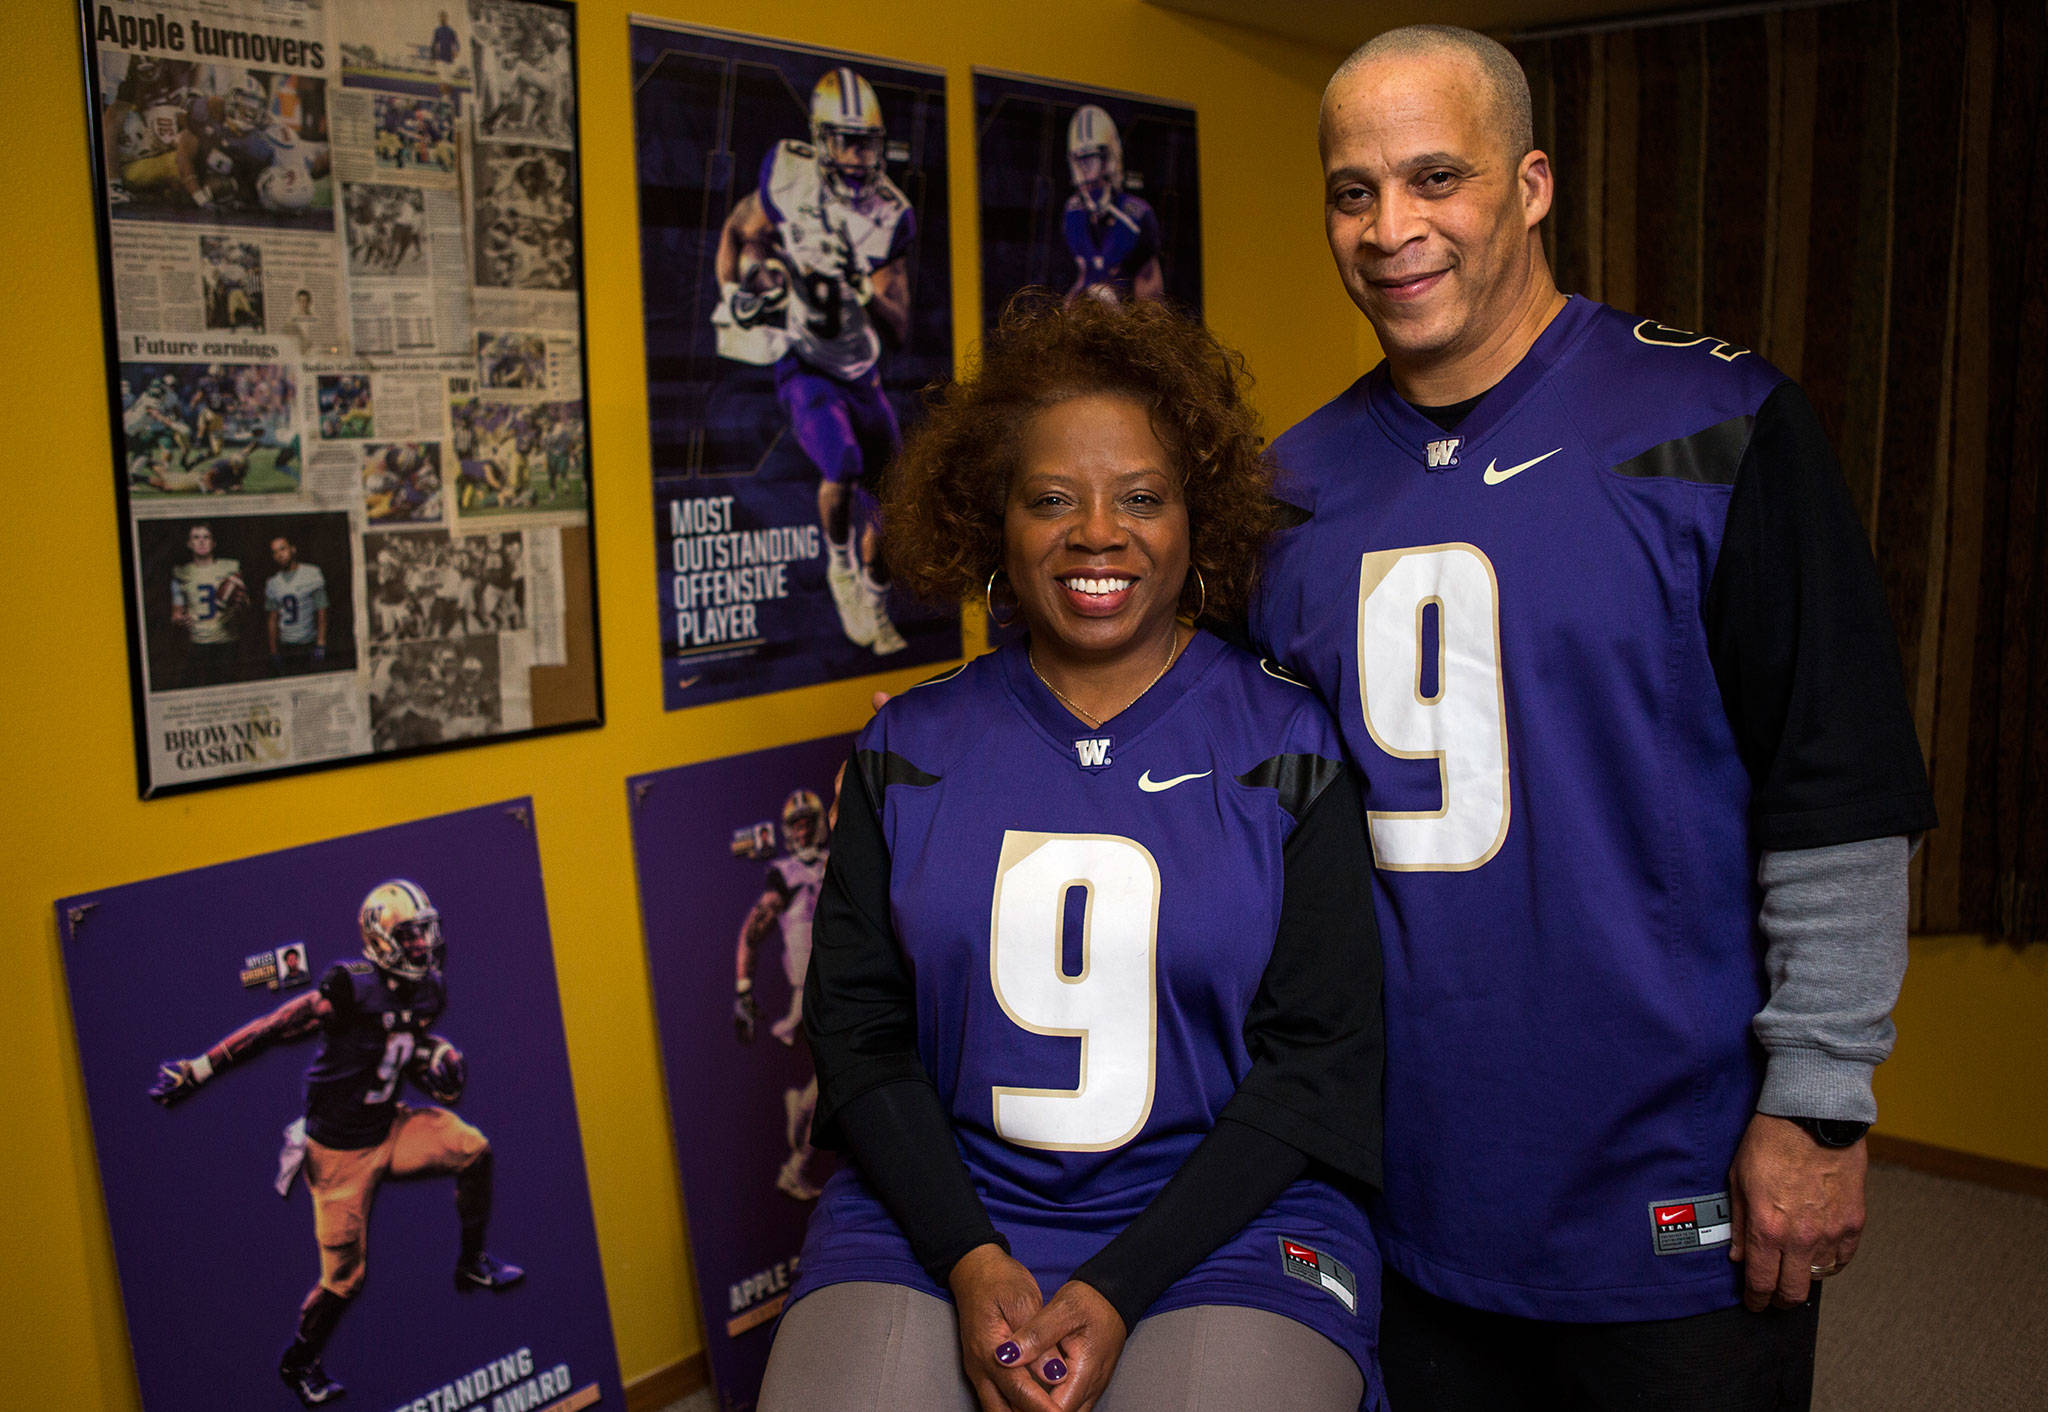 Robbie and Scott Gaskin, parents of University of Washington Husky football running back Myles Gaskin, stand near some memorabilia of his record-setting career at their home in Lynnwood. The family is in Pasadena this week to watch him play in the Rose Bowl. (Olivia Vanni / The Herald)